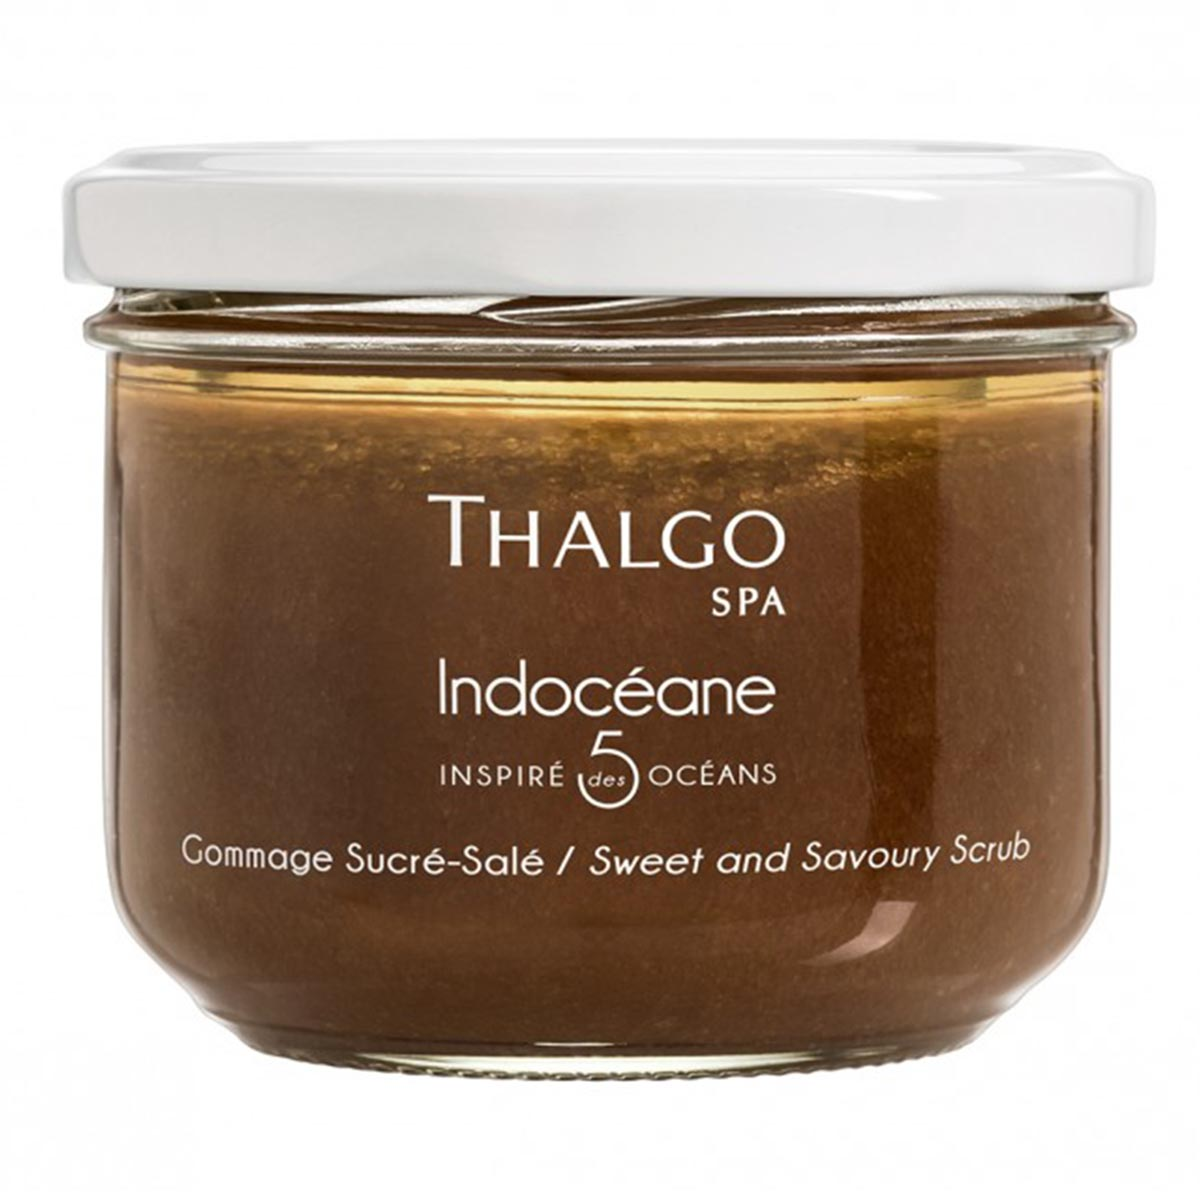 Thalgo gommage sucre sale indoceane 250gr